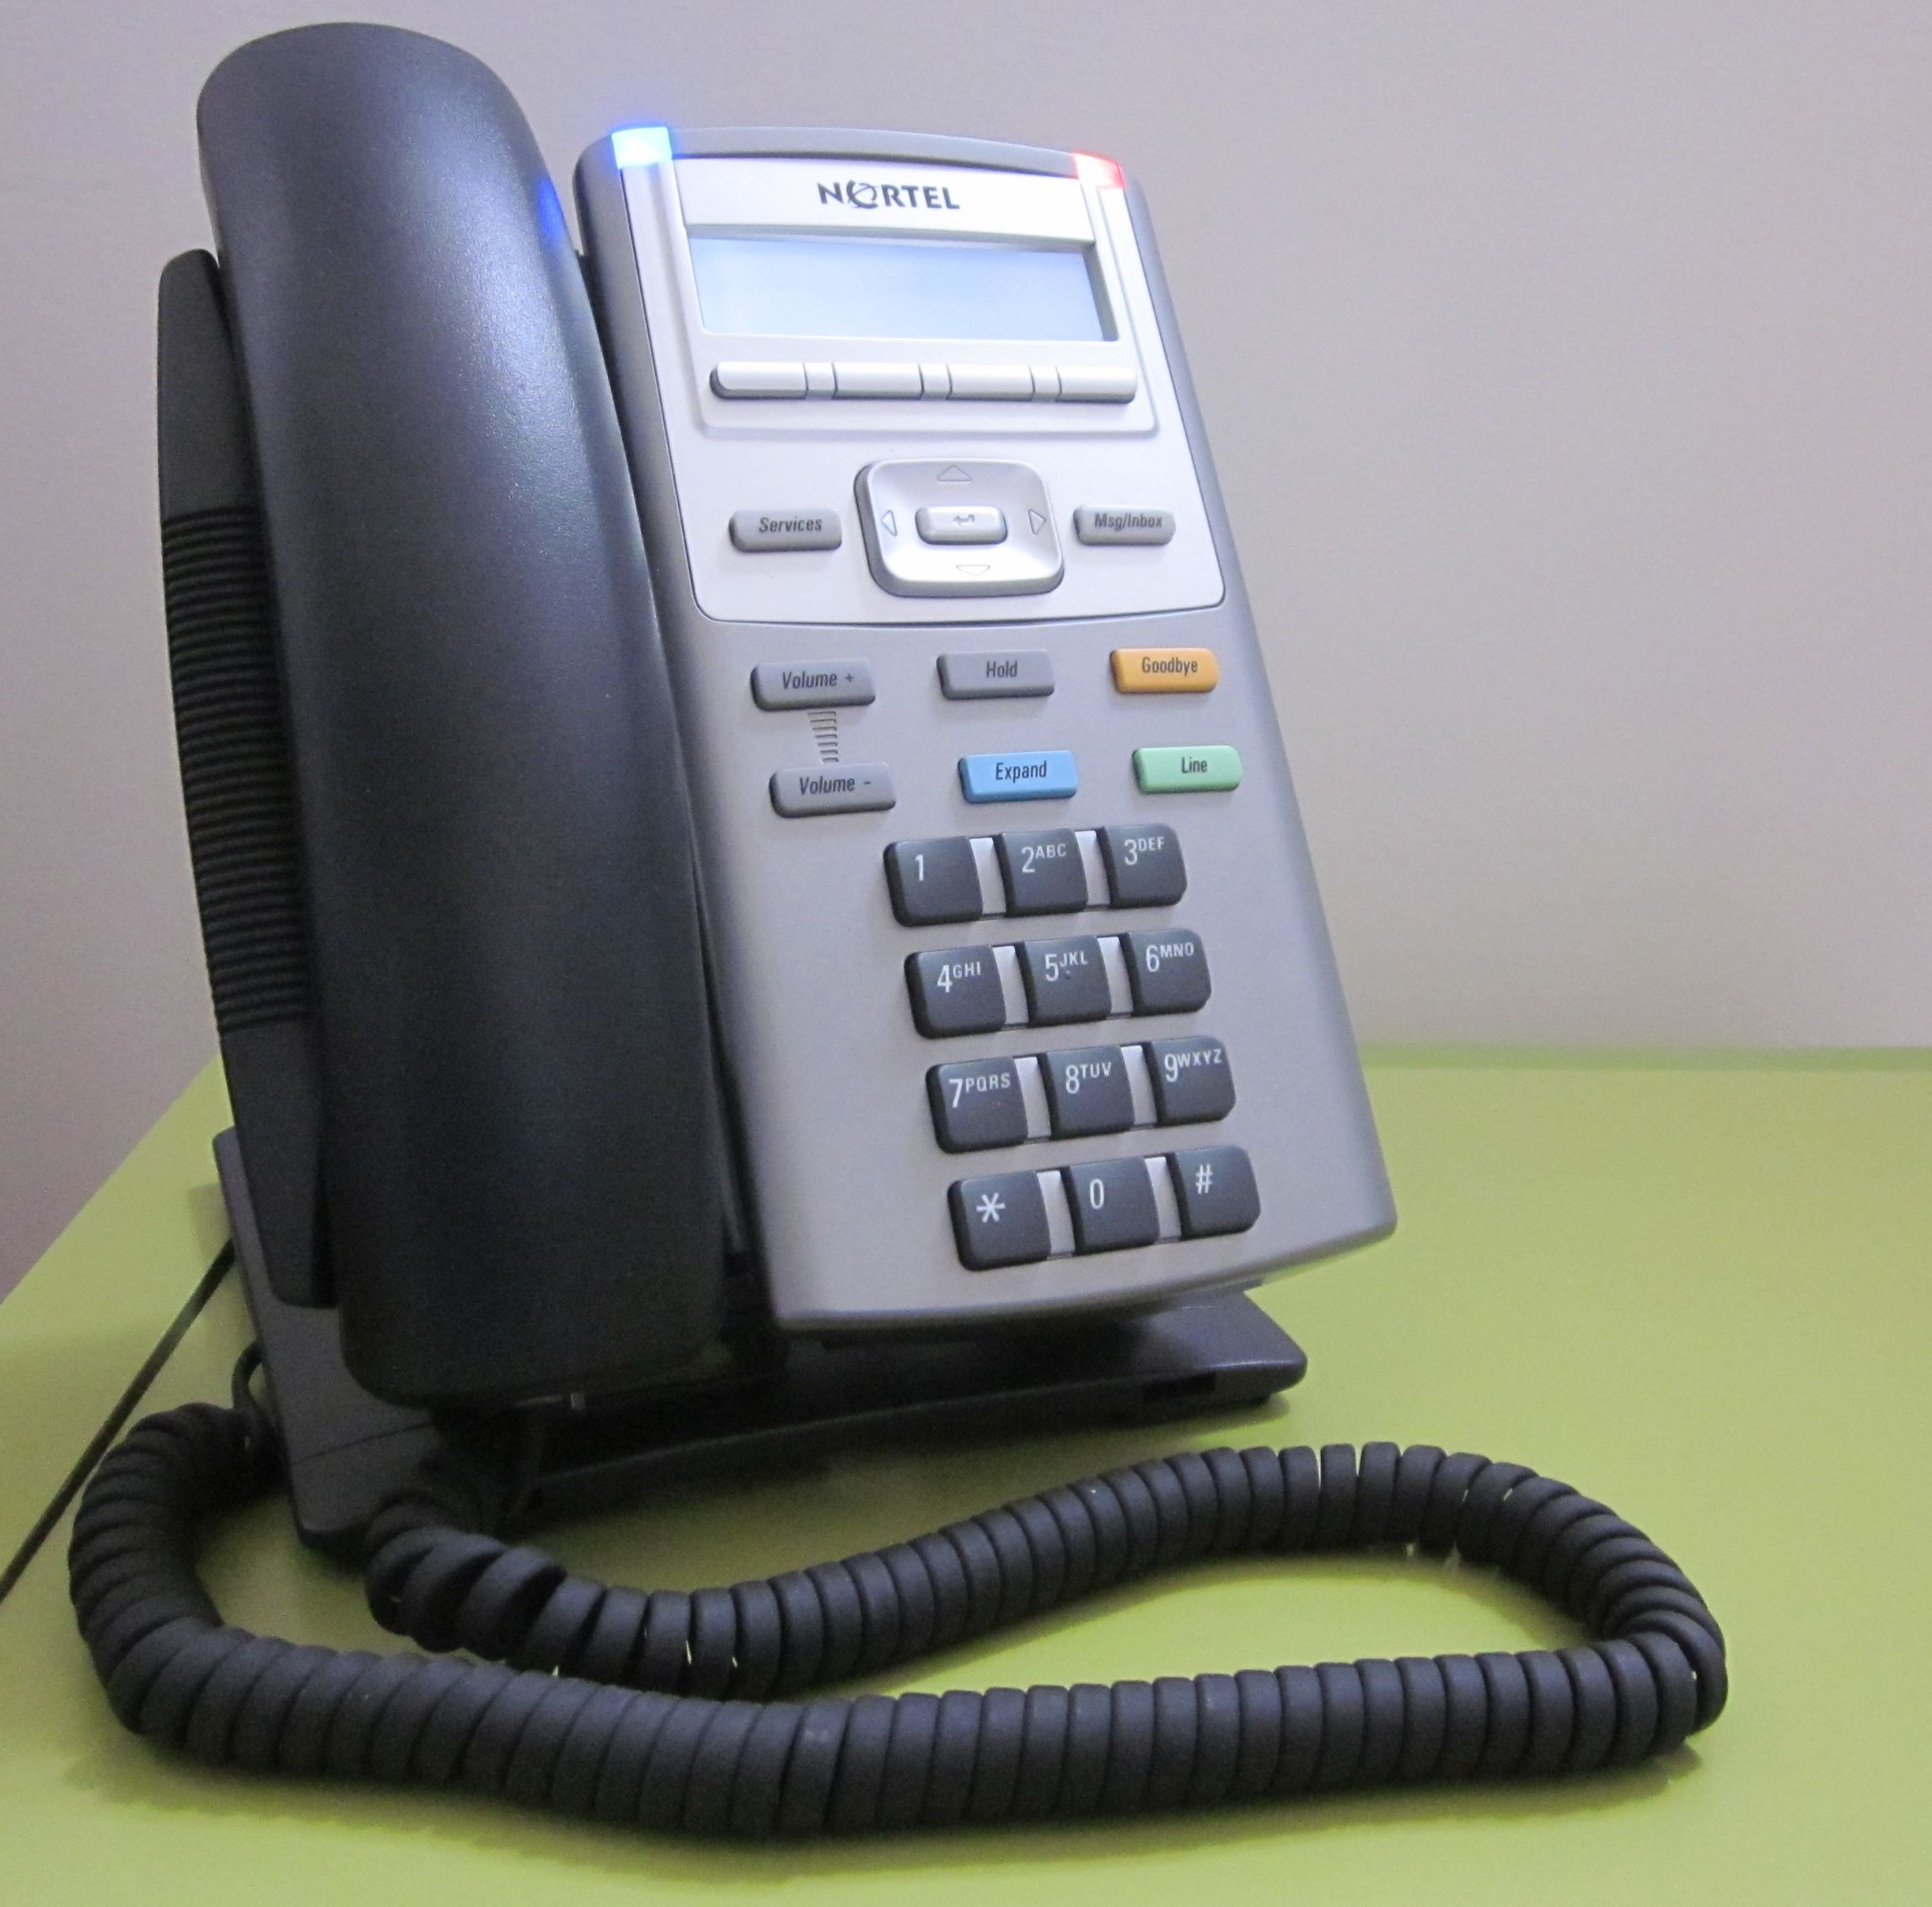 and avaya yealink office out coming telcodepot ip next generation phones soon blog